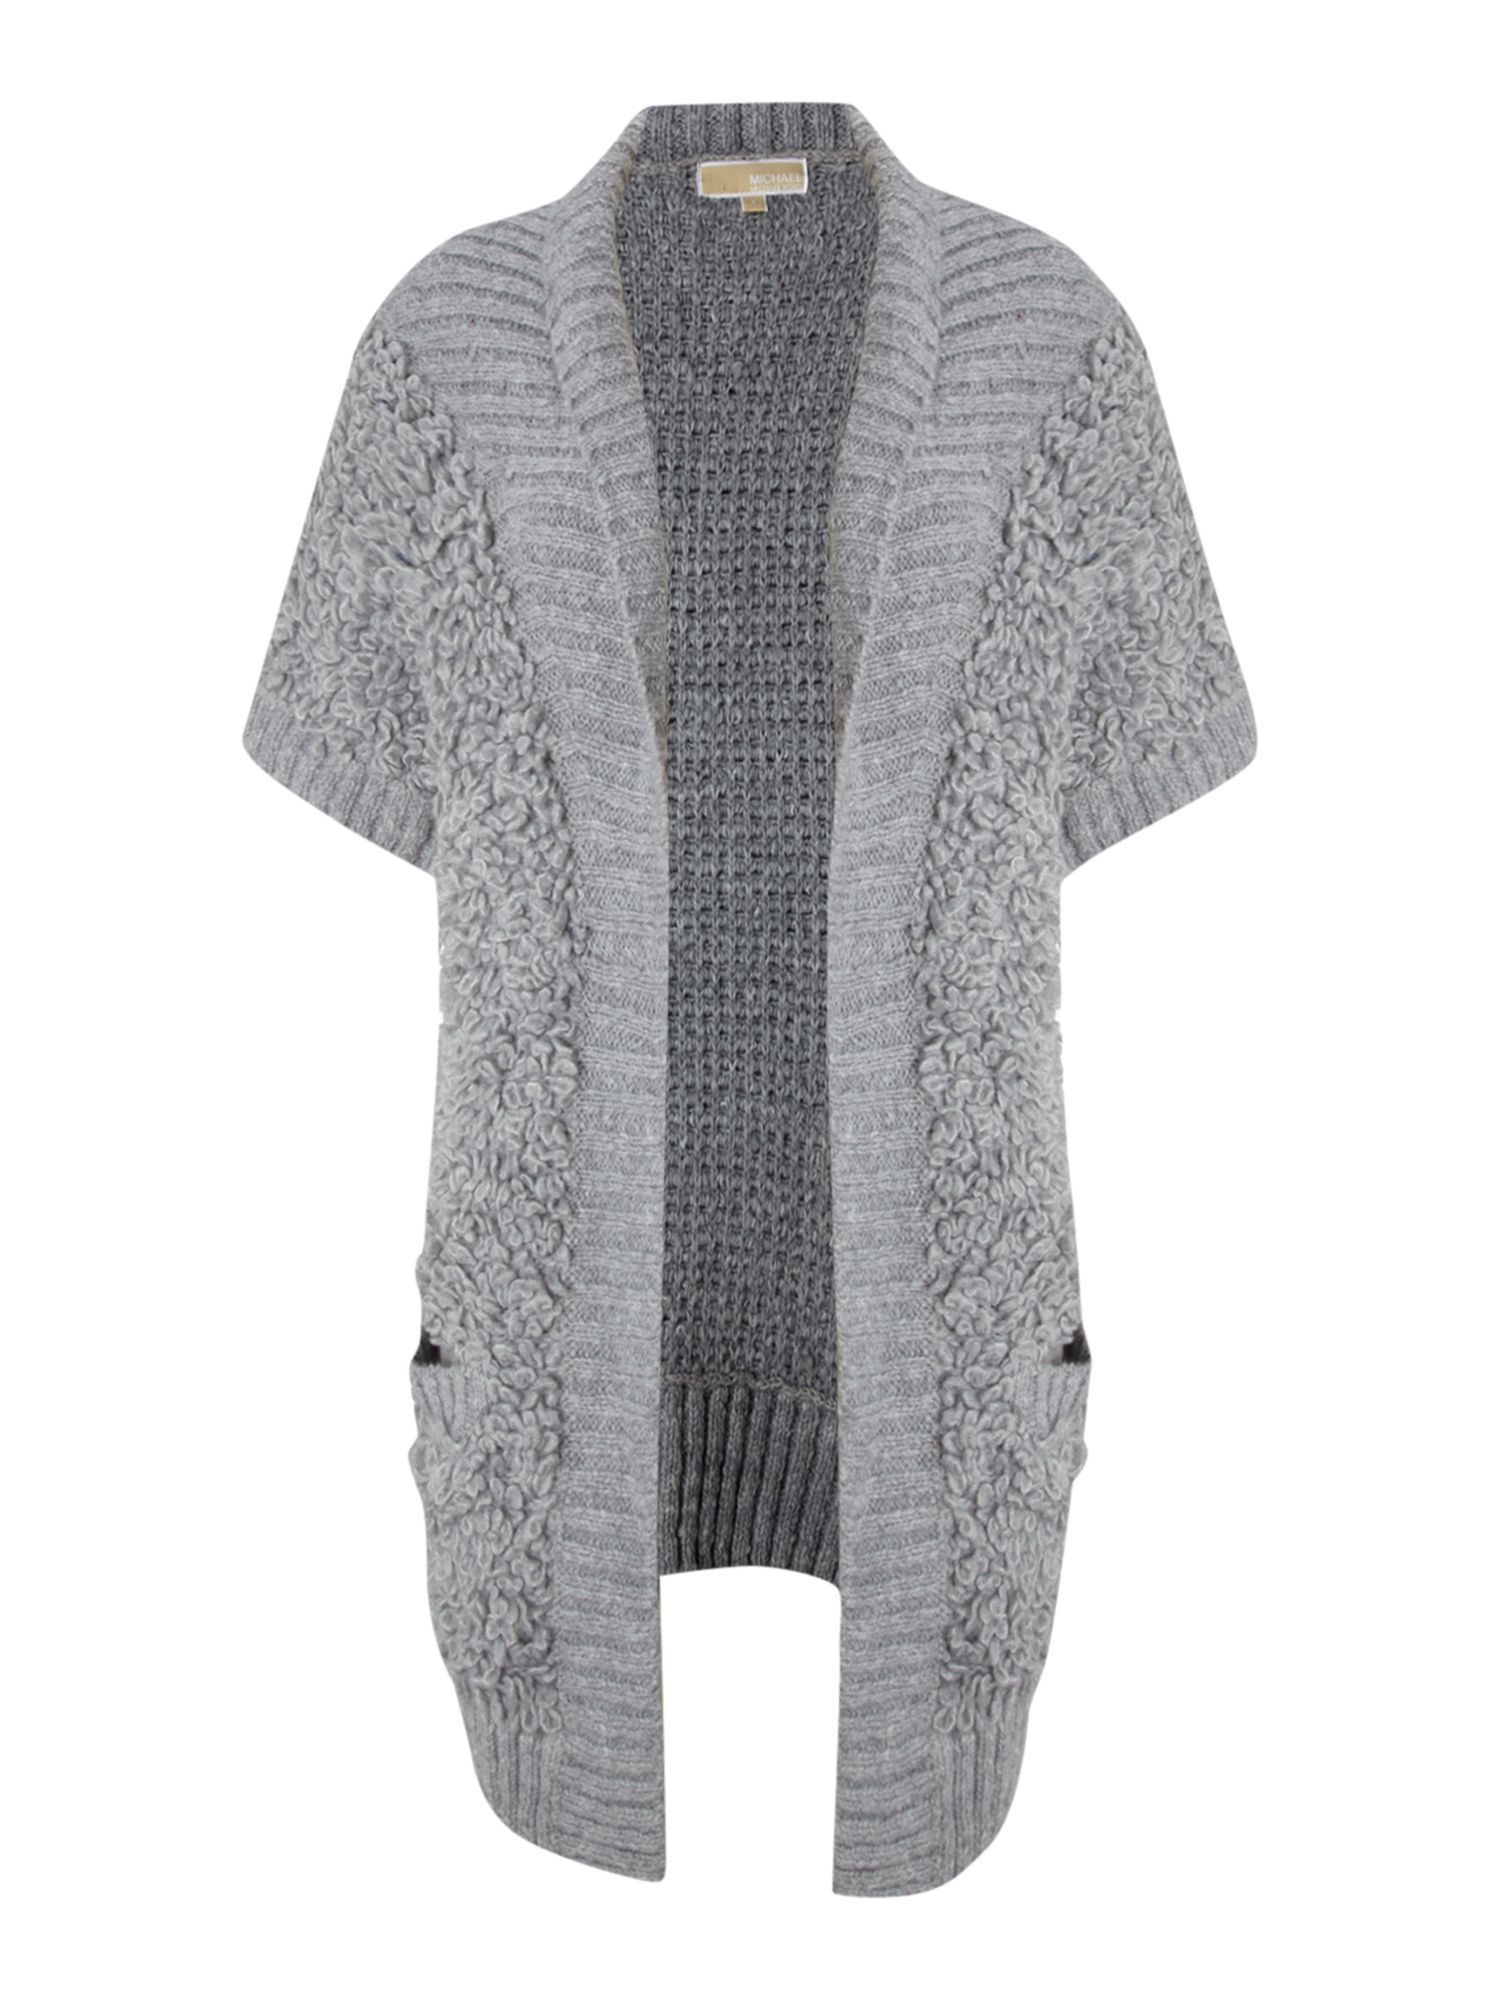 Michael Kors Short sleeve loop knit cardigan http://shop.pixiie ...